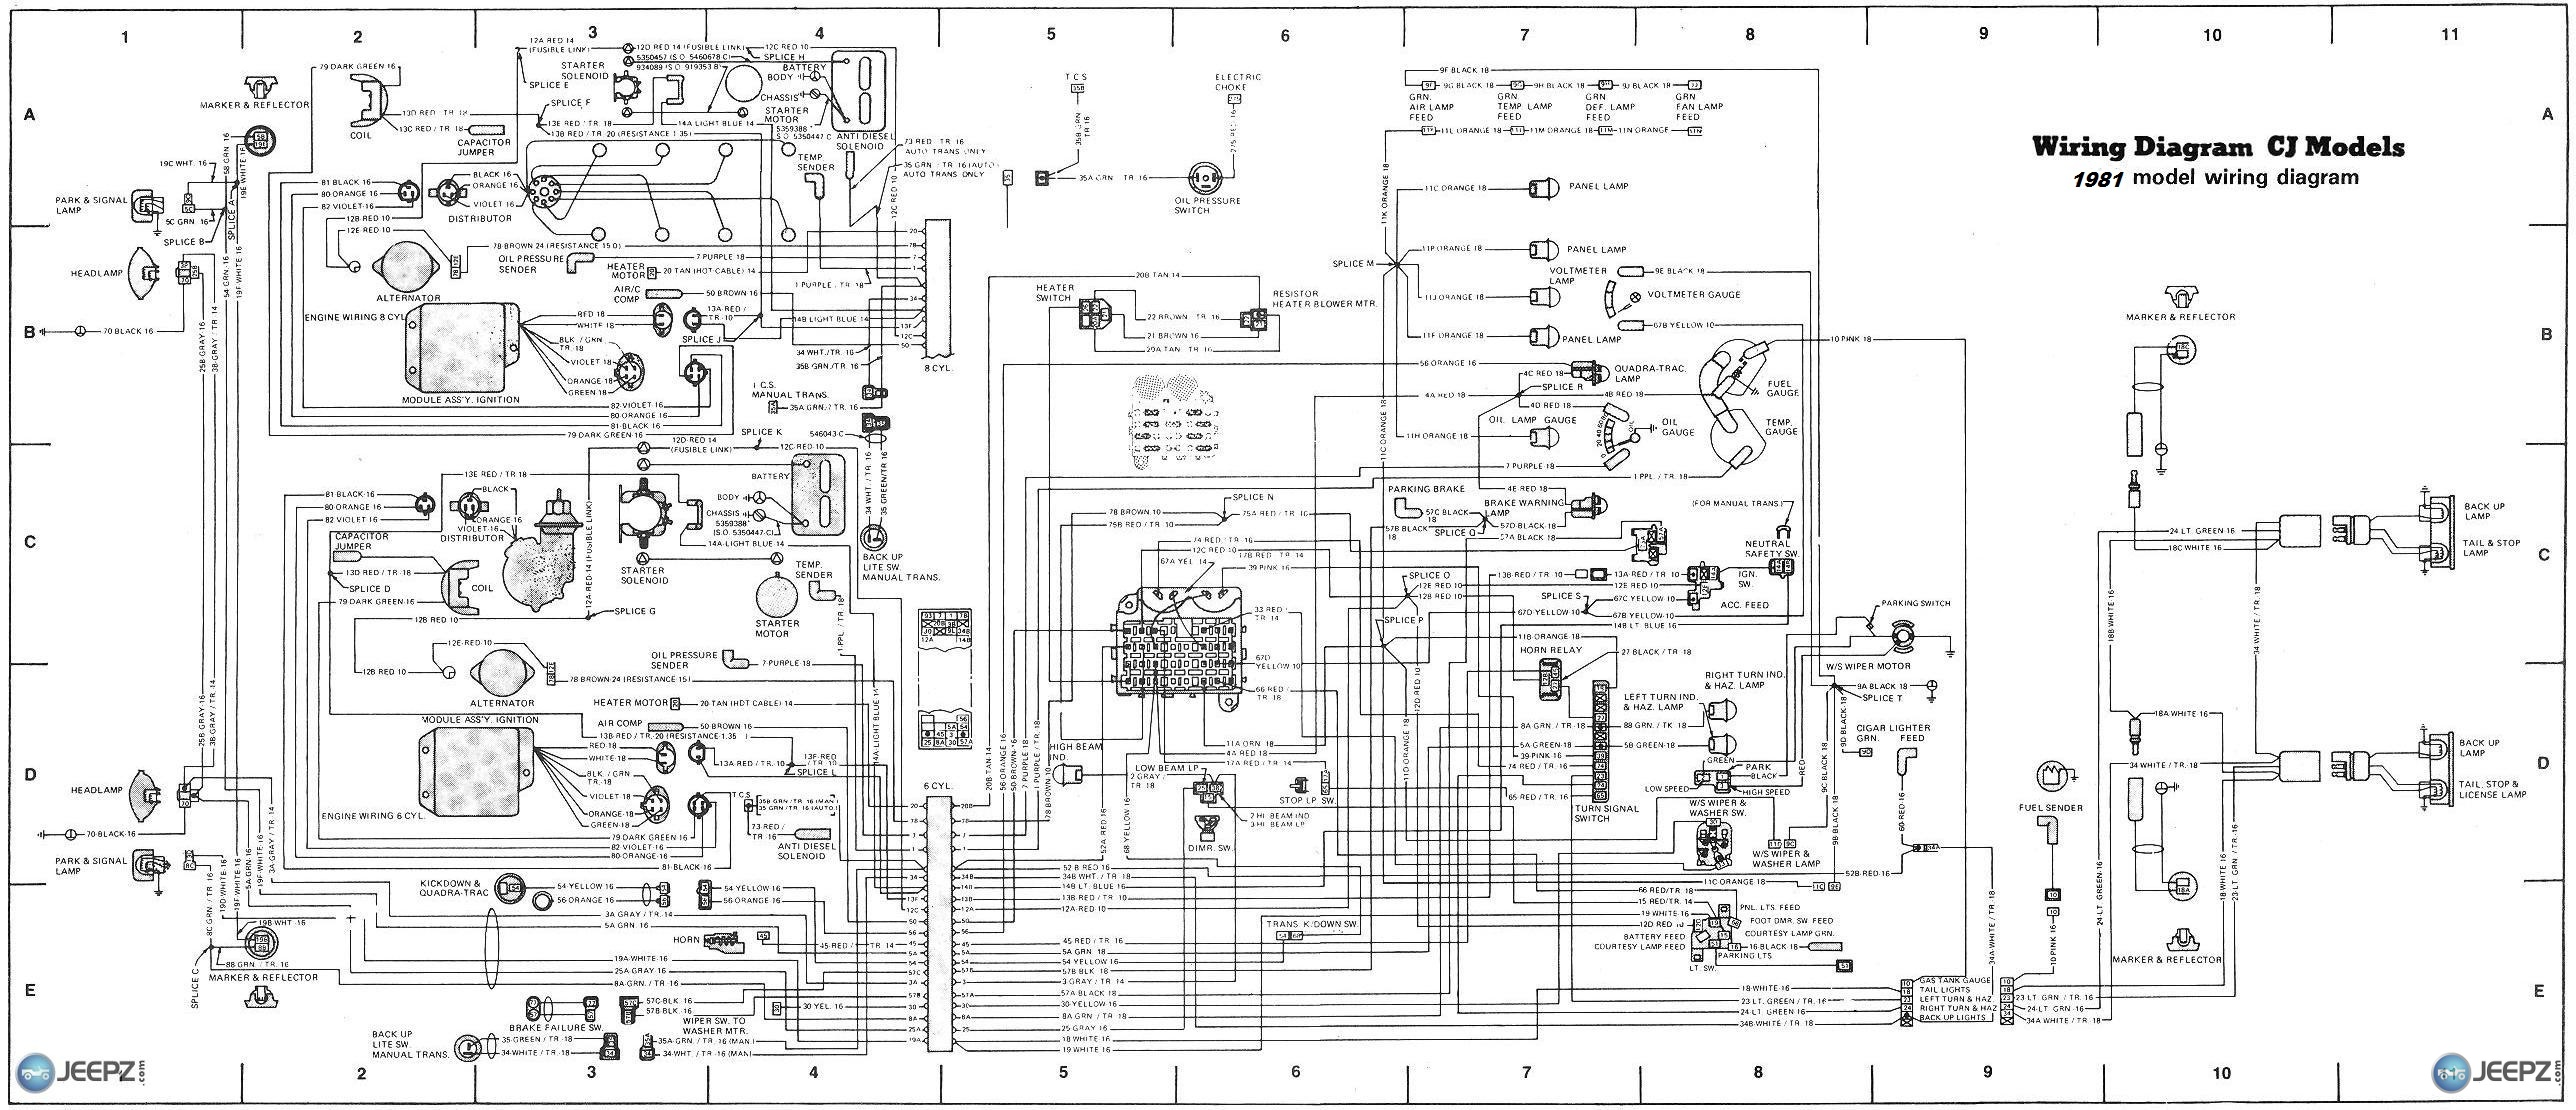 Jeep Cj Wiring Diagram - wiring diagram boards-rule -  boards-rule.ristorantegorgodelpo.itRistorante Gorgo del Po